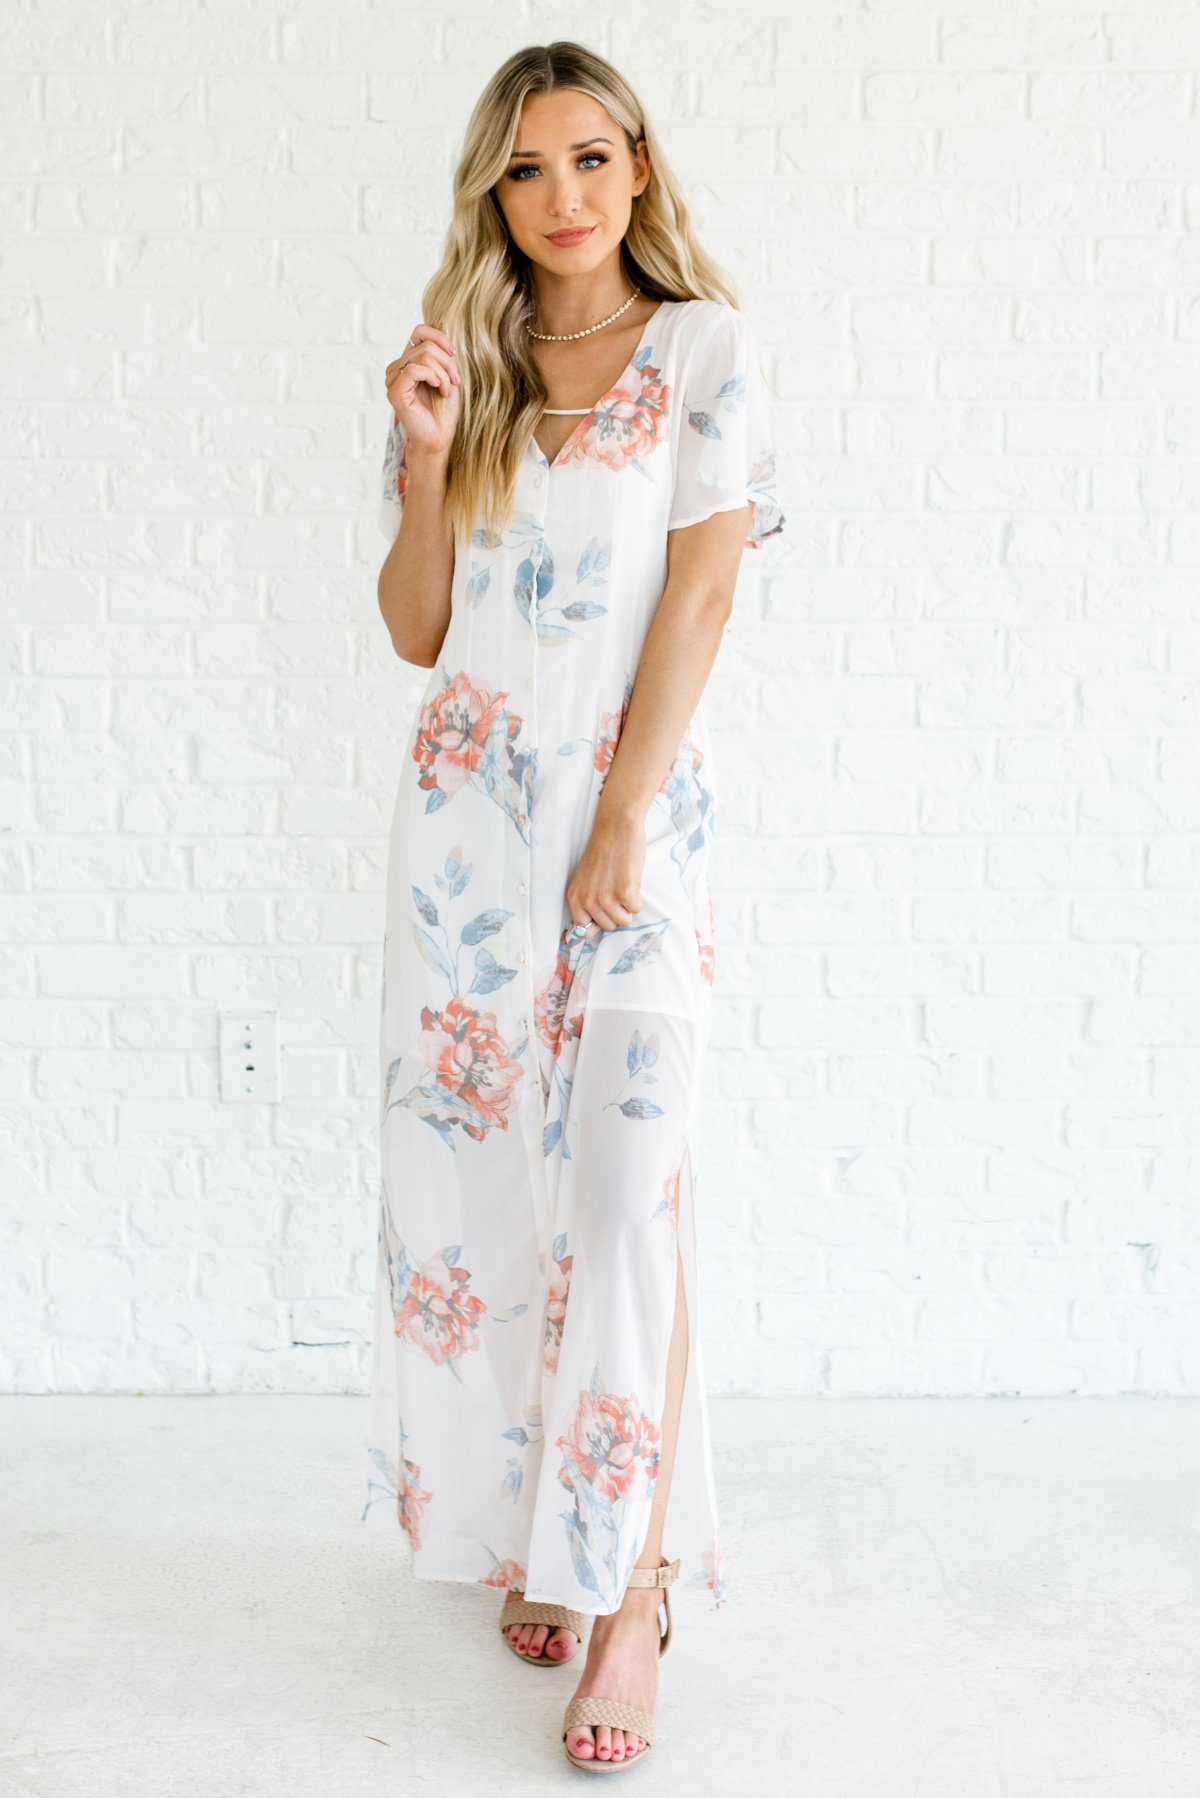 Peaceful_Mornings_White_Floral_Maxi_Dress_Full_Front_2000x.jpg